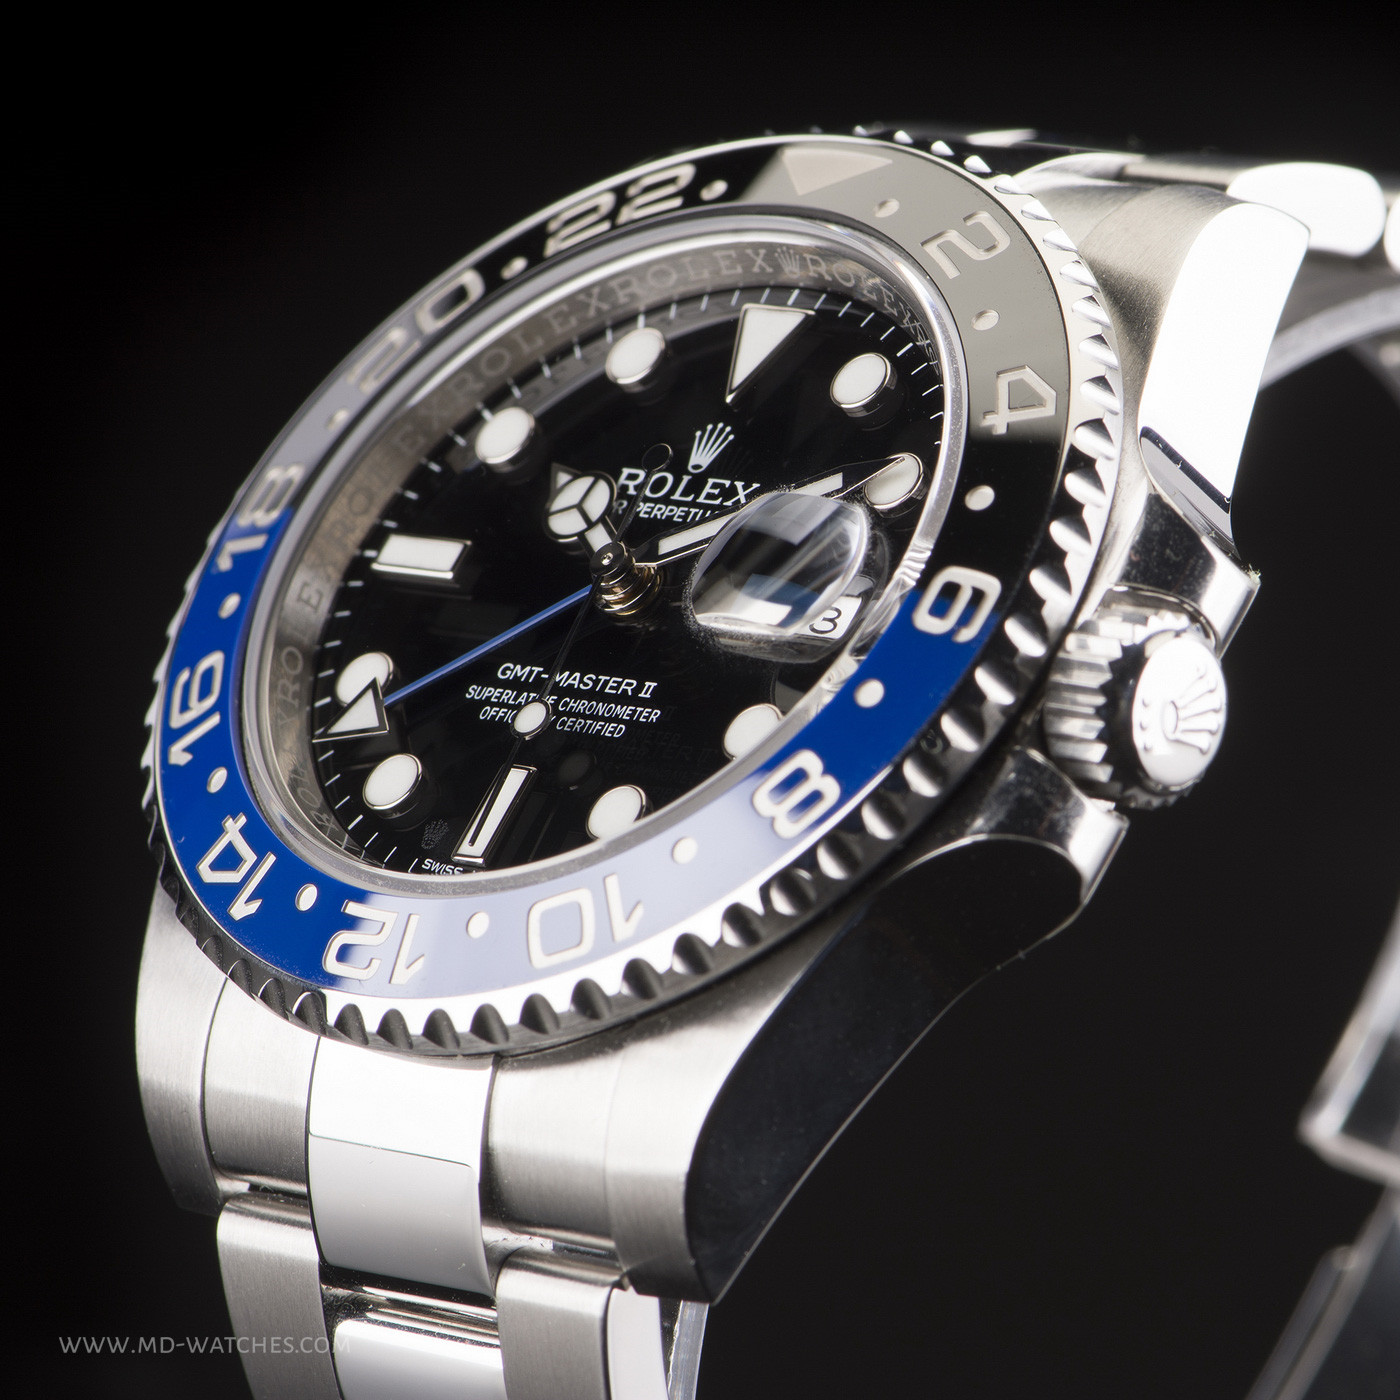 Rolex Gmt Master Ii 116710blnr Ceramic Batman